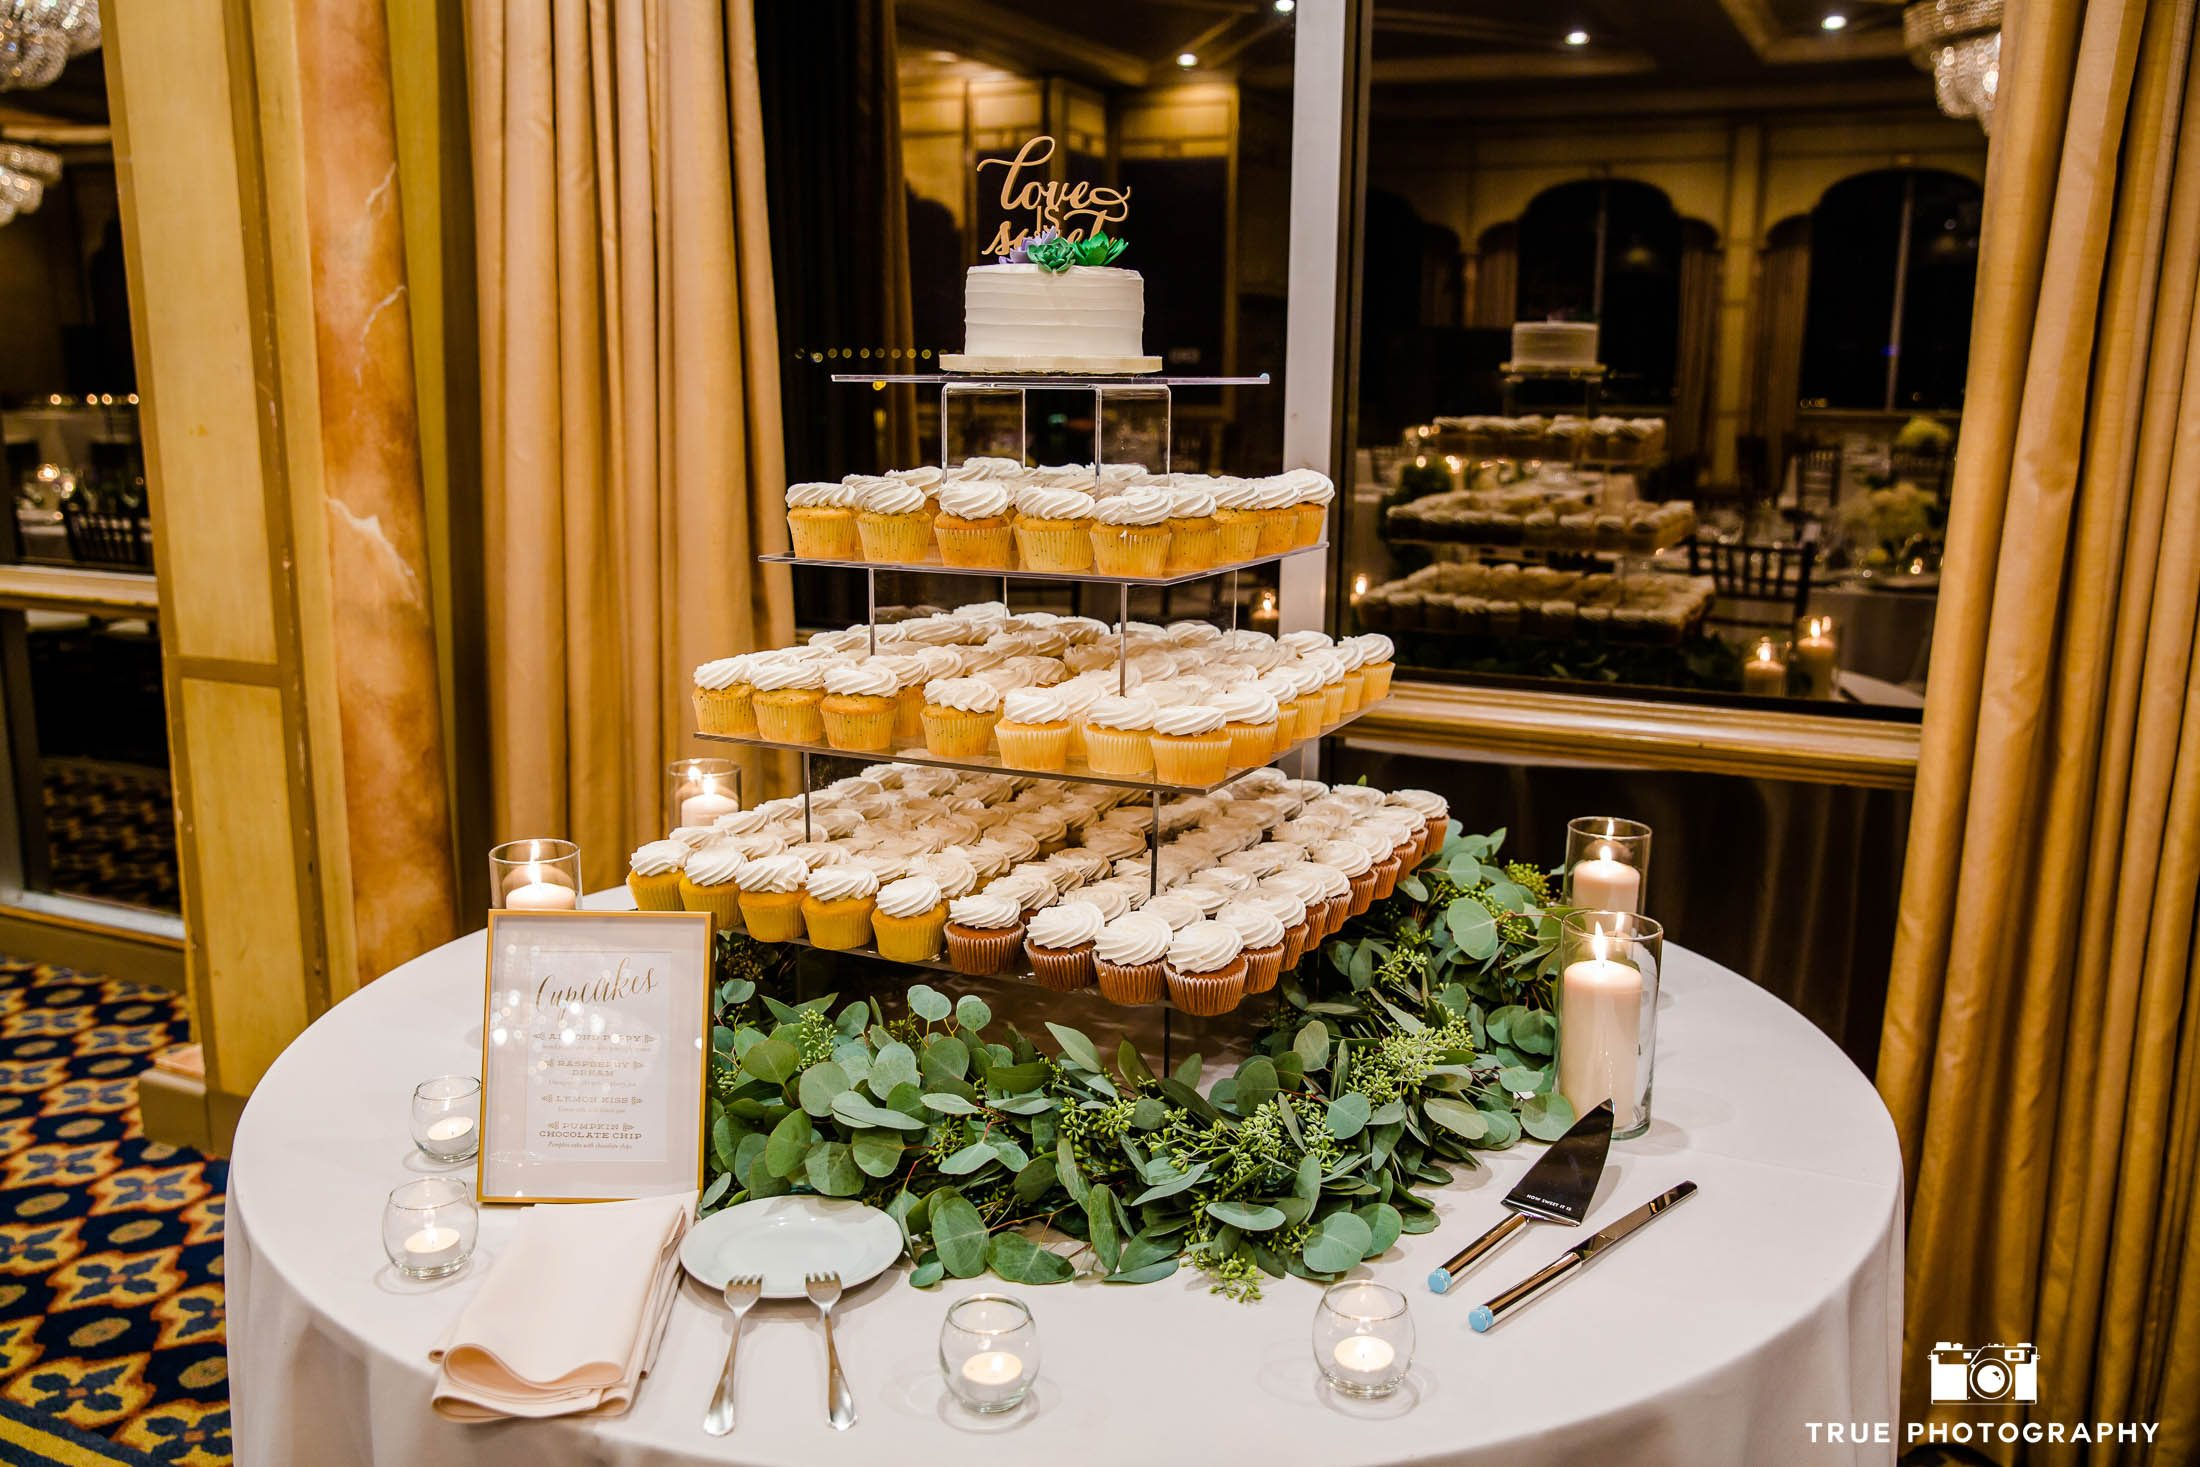 4-tier wedding cake and cupcakes by Flour Power